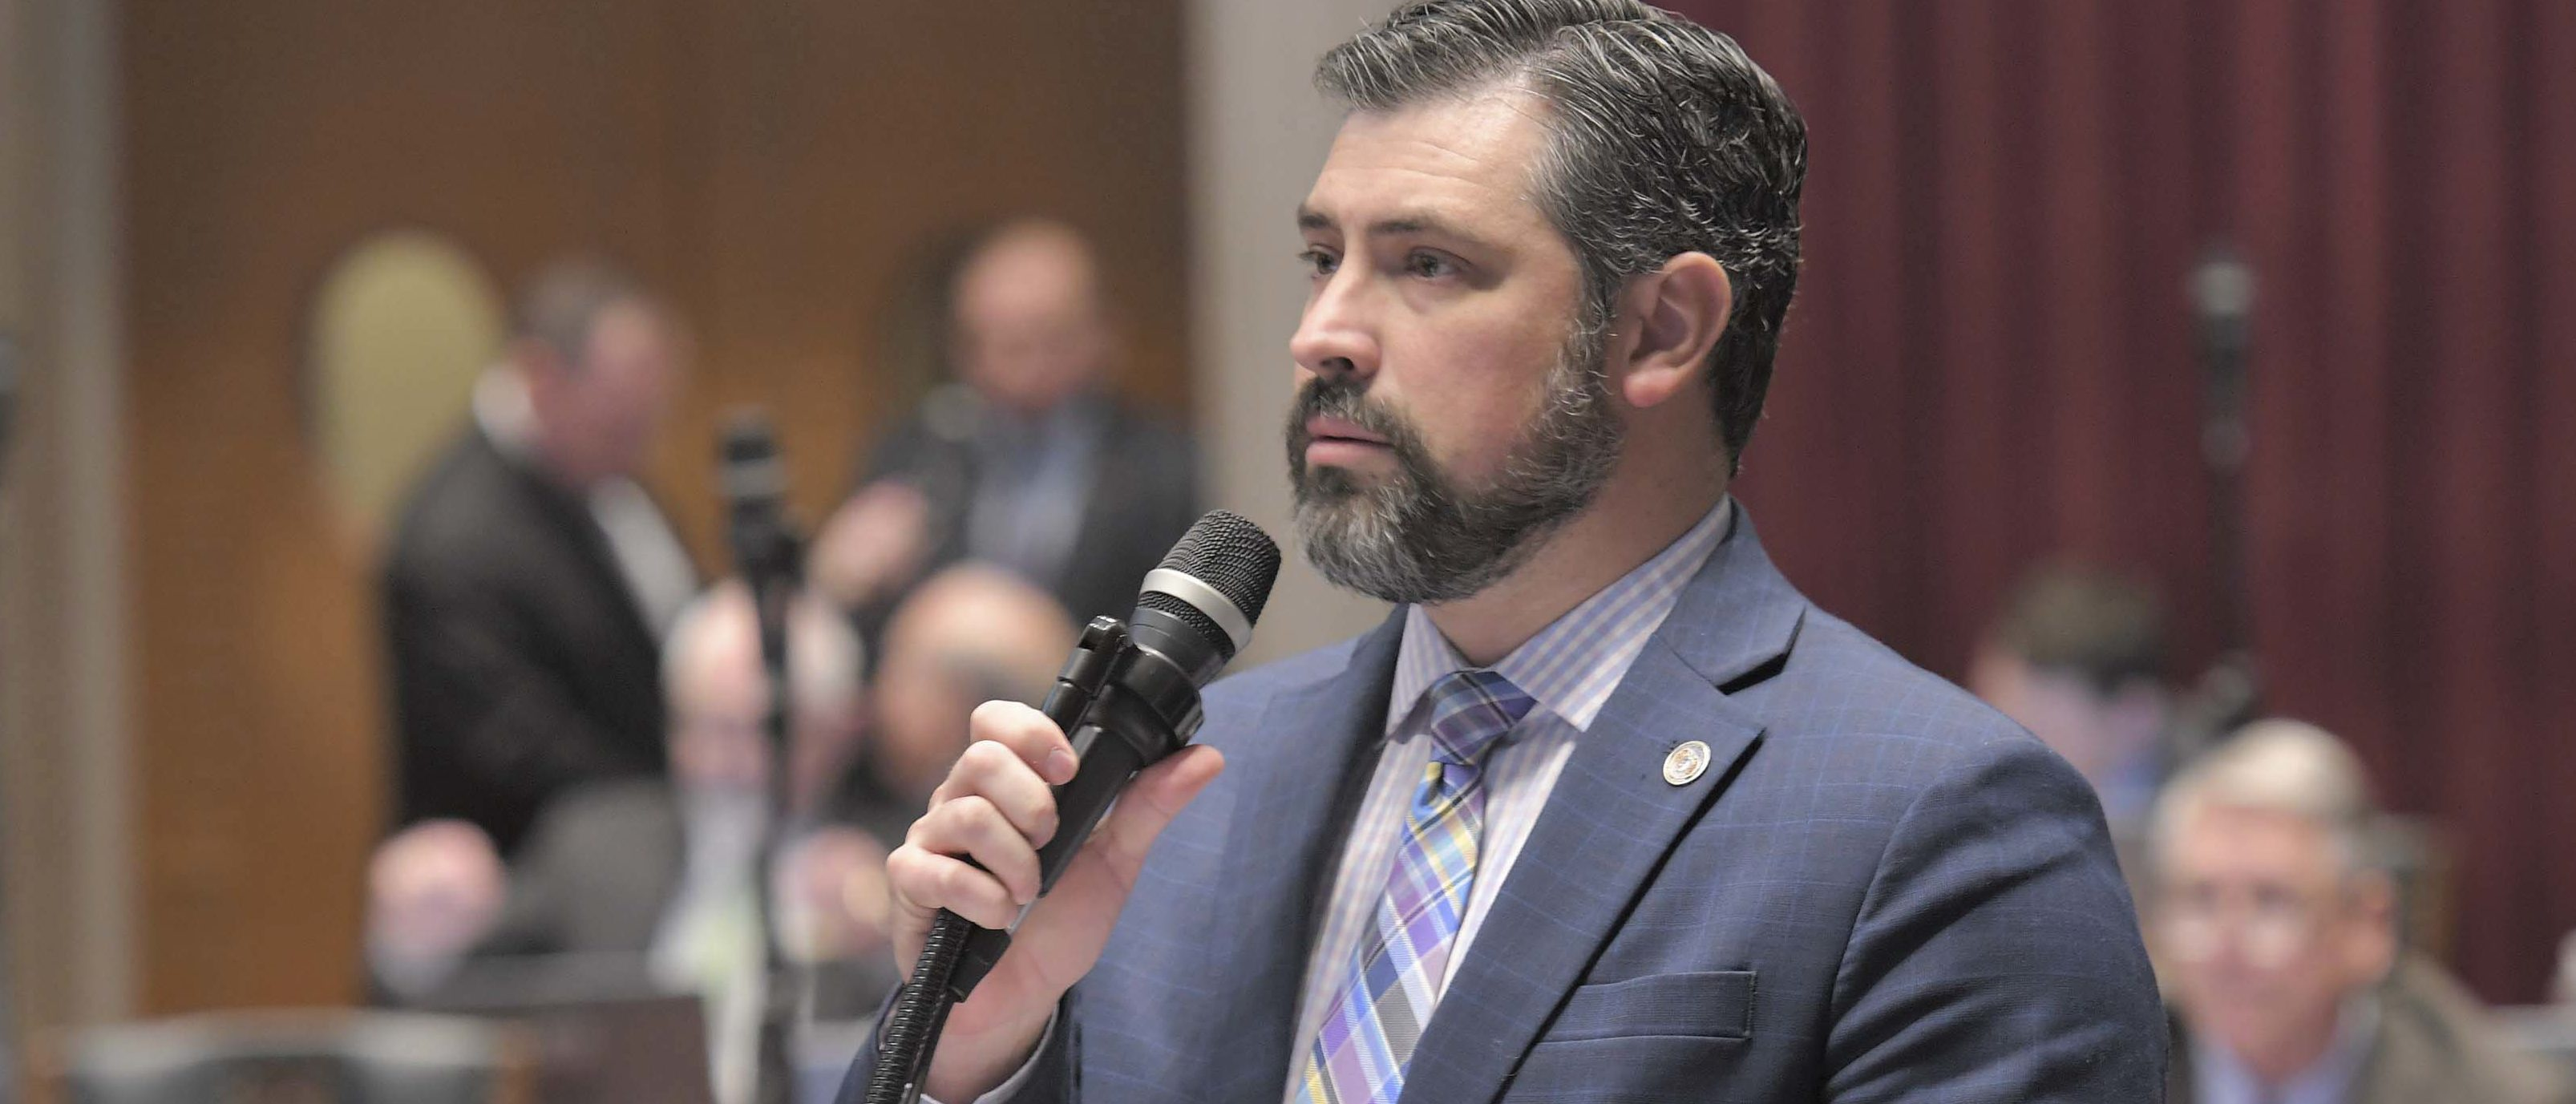 'Death Threats For Me And My Family': Missouri Lawmaker Trying To Ban Drag Queens From Reading To Kids Says He's Faced 'Vitriol' And 'Hate'